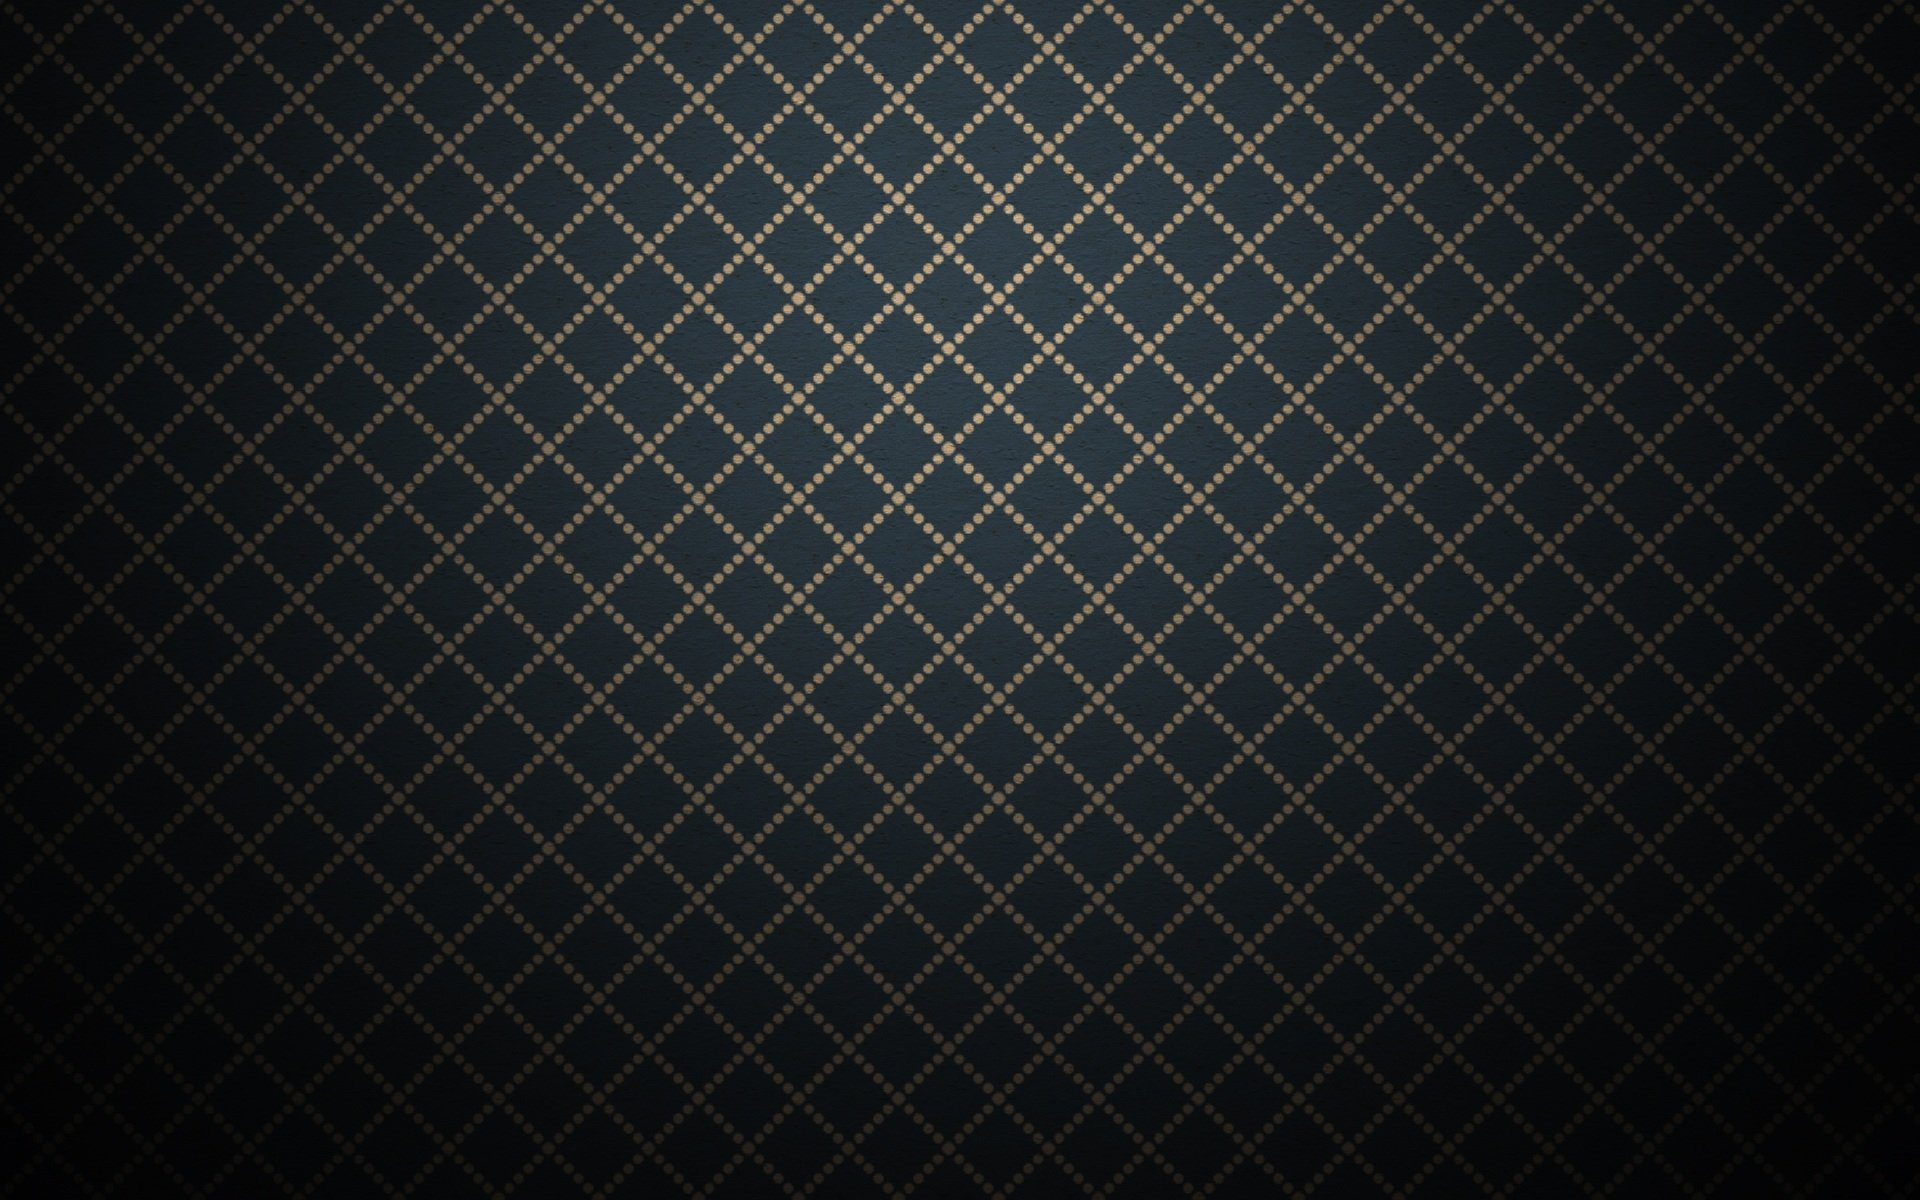 Black Pattern Wallpaper HD Wallpaper 1920x1200